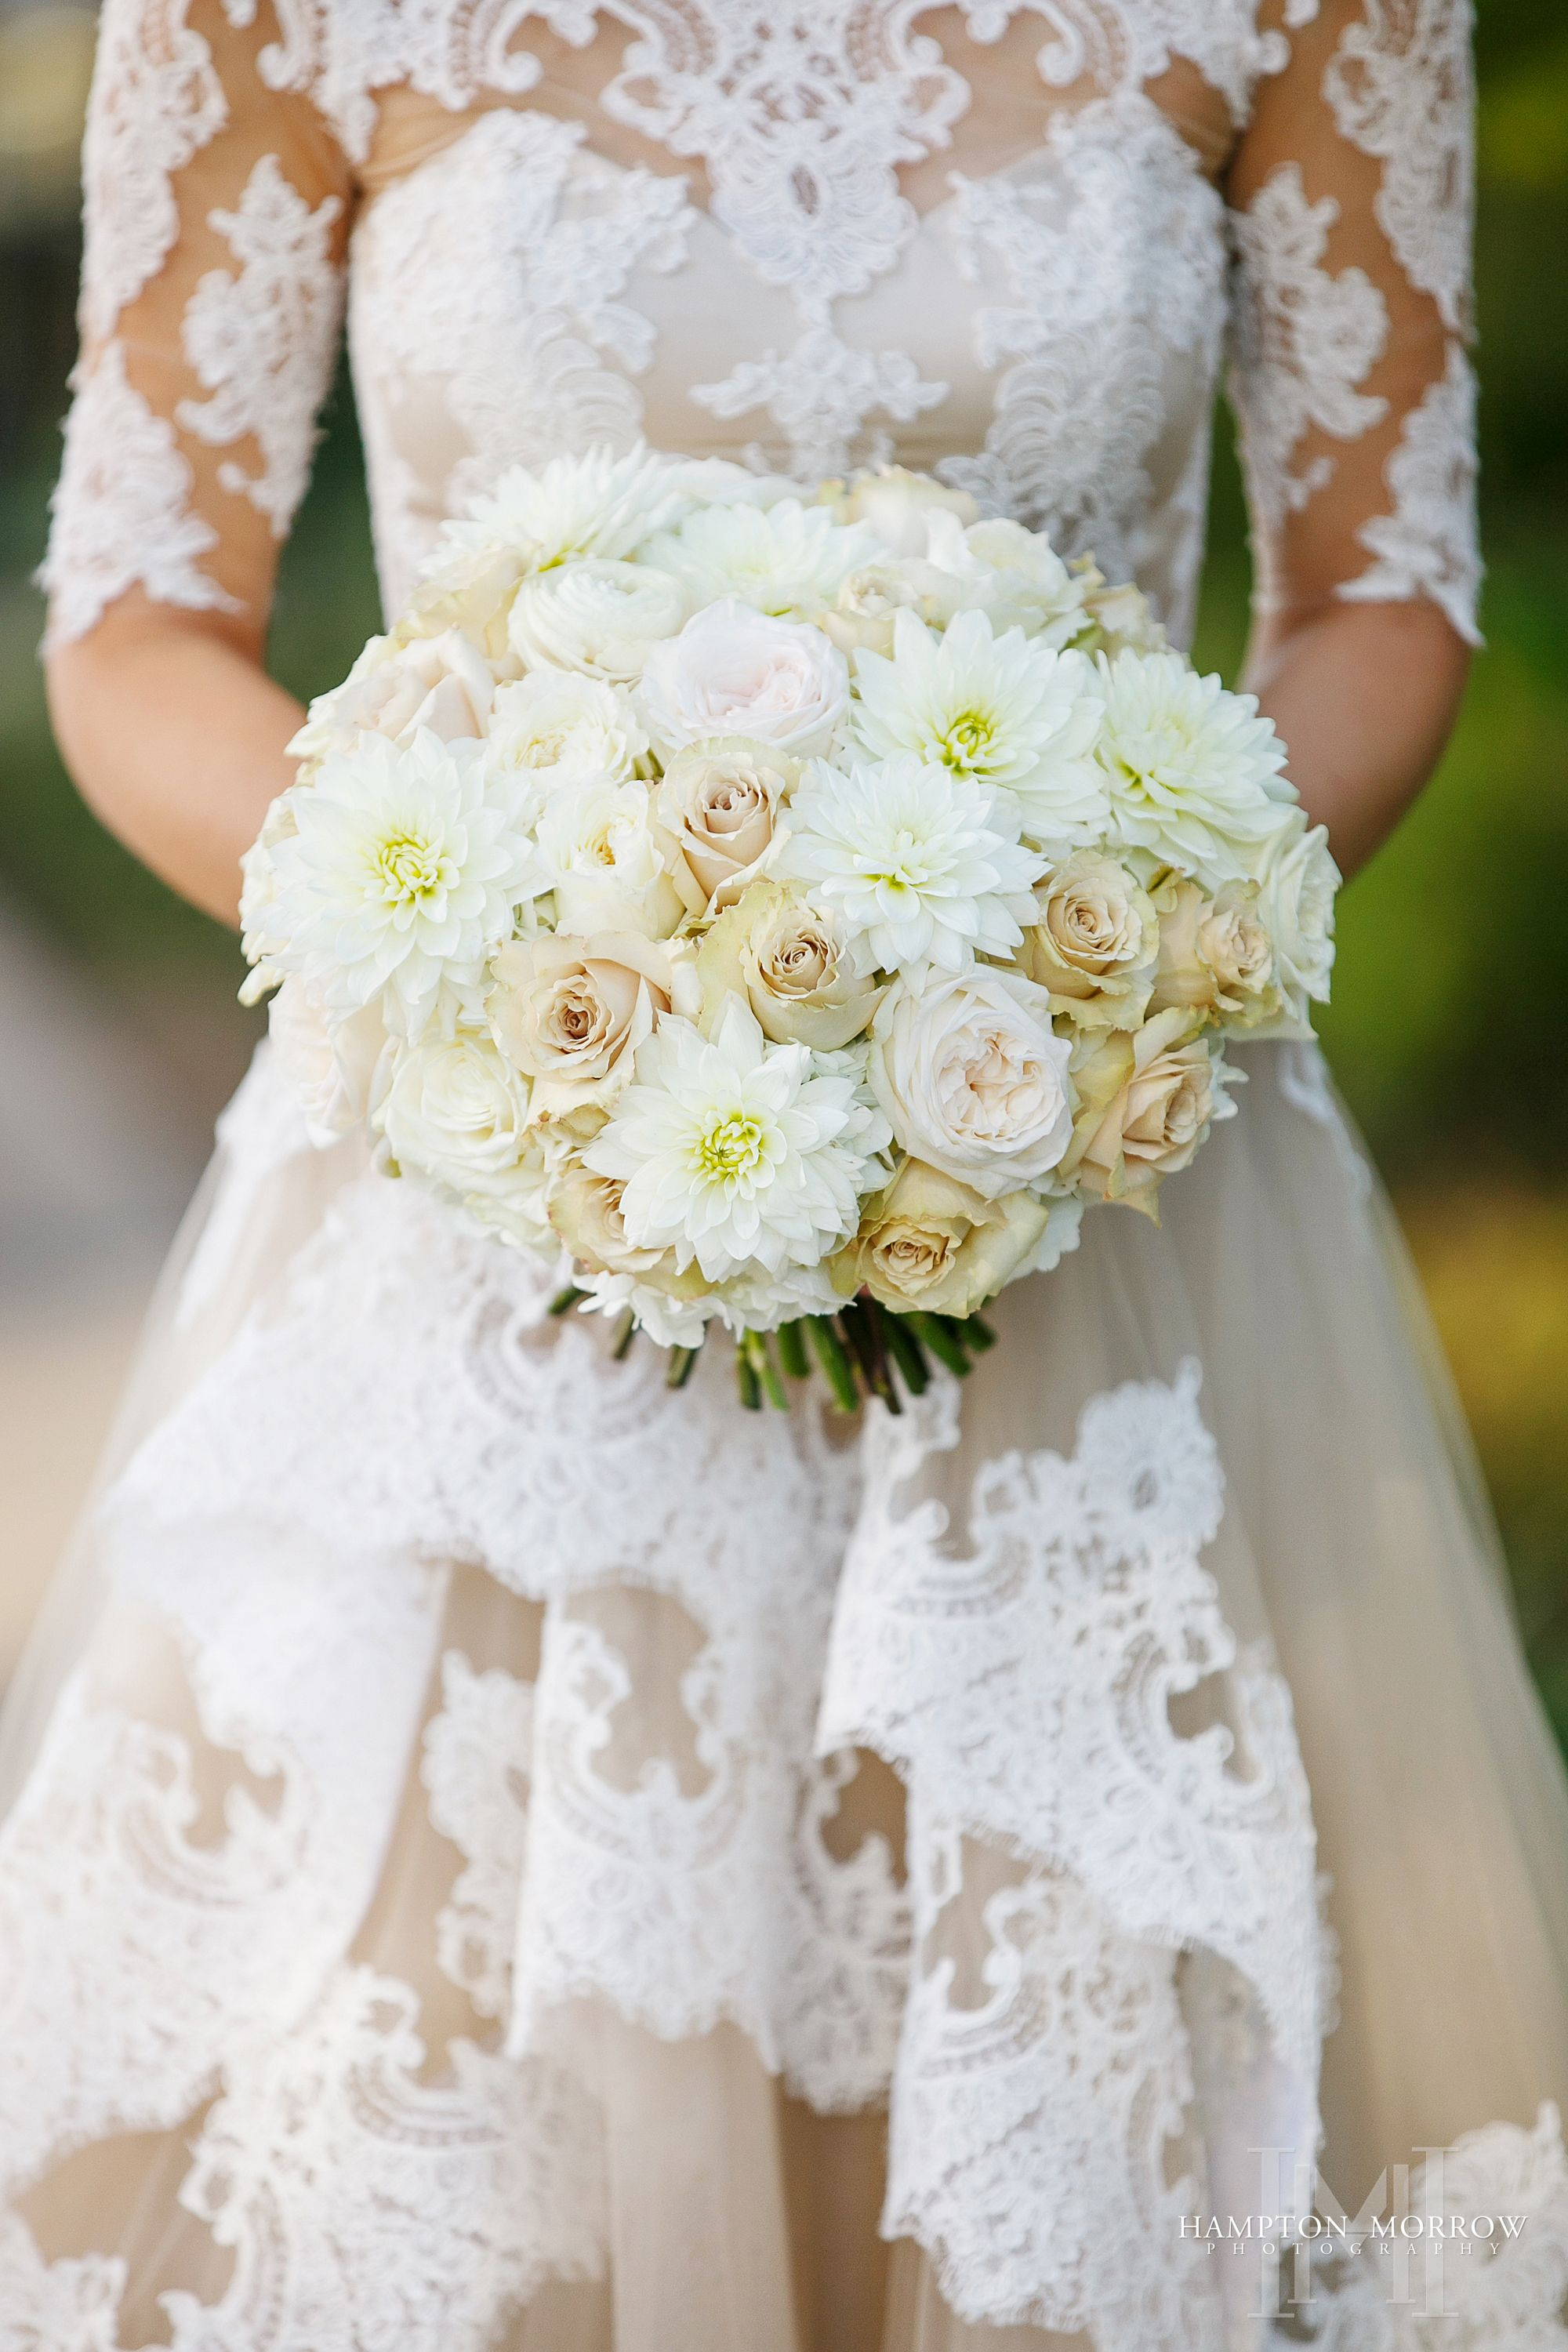 Redneck wedding dress  Lexie  Blake October Wedding with Rich Fall Color Palette  Dream